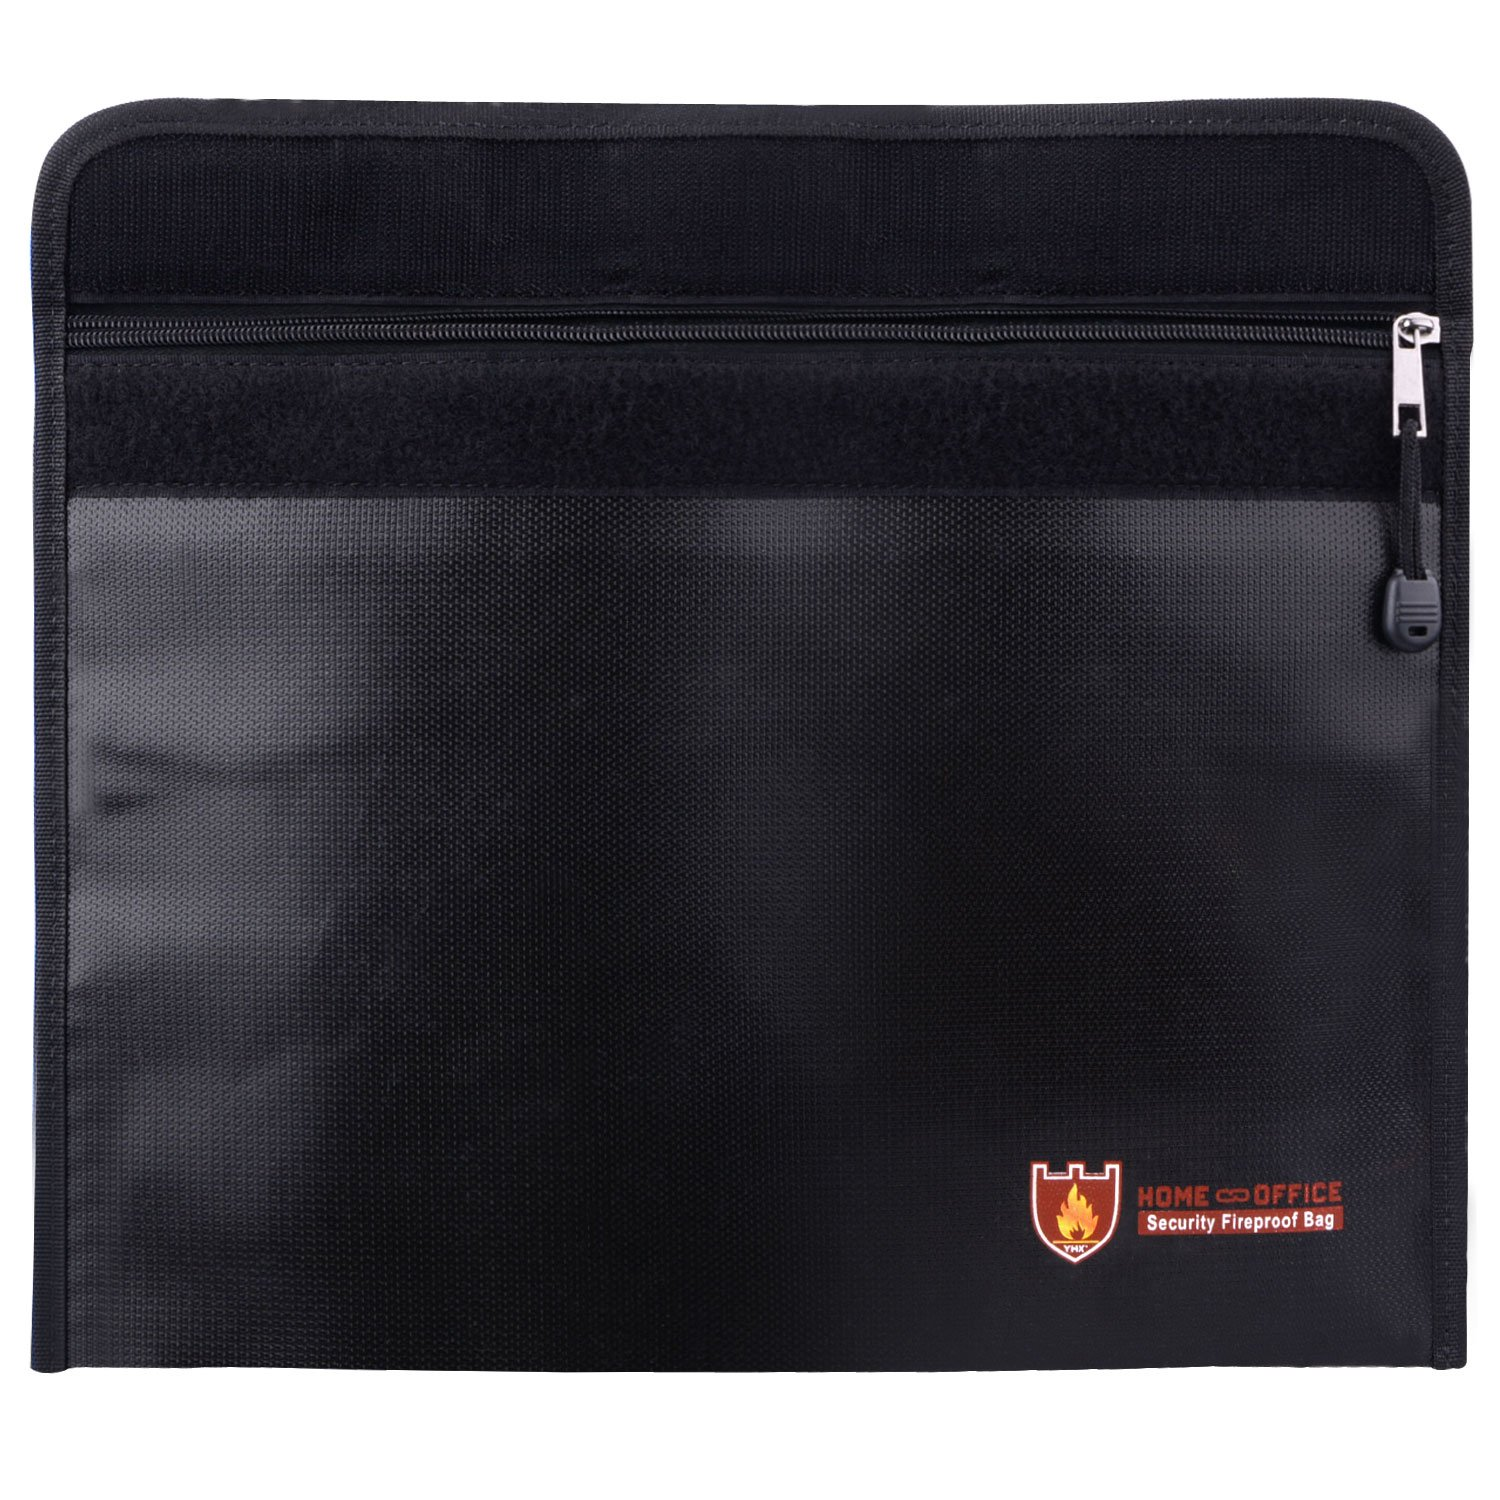 Fireproof Document Bag, Fireproof Waterproof Pouch Safe Storage for Money Cash Documents Jewelry Passport and Battery with Name Card 15''x11'' (Black)